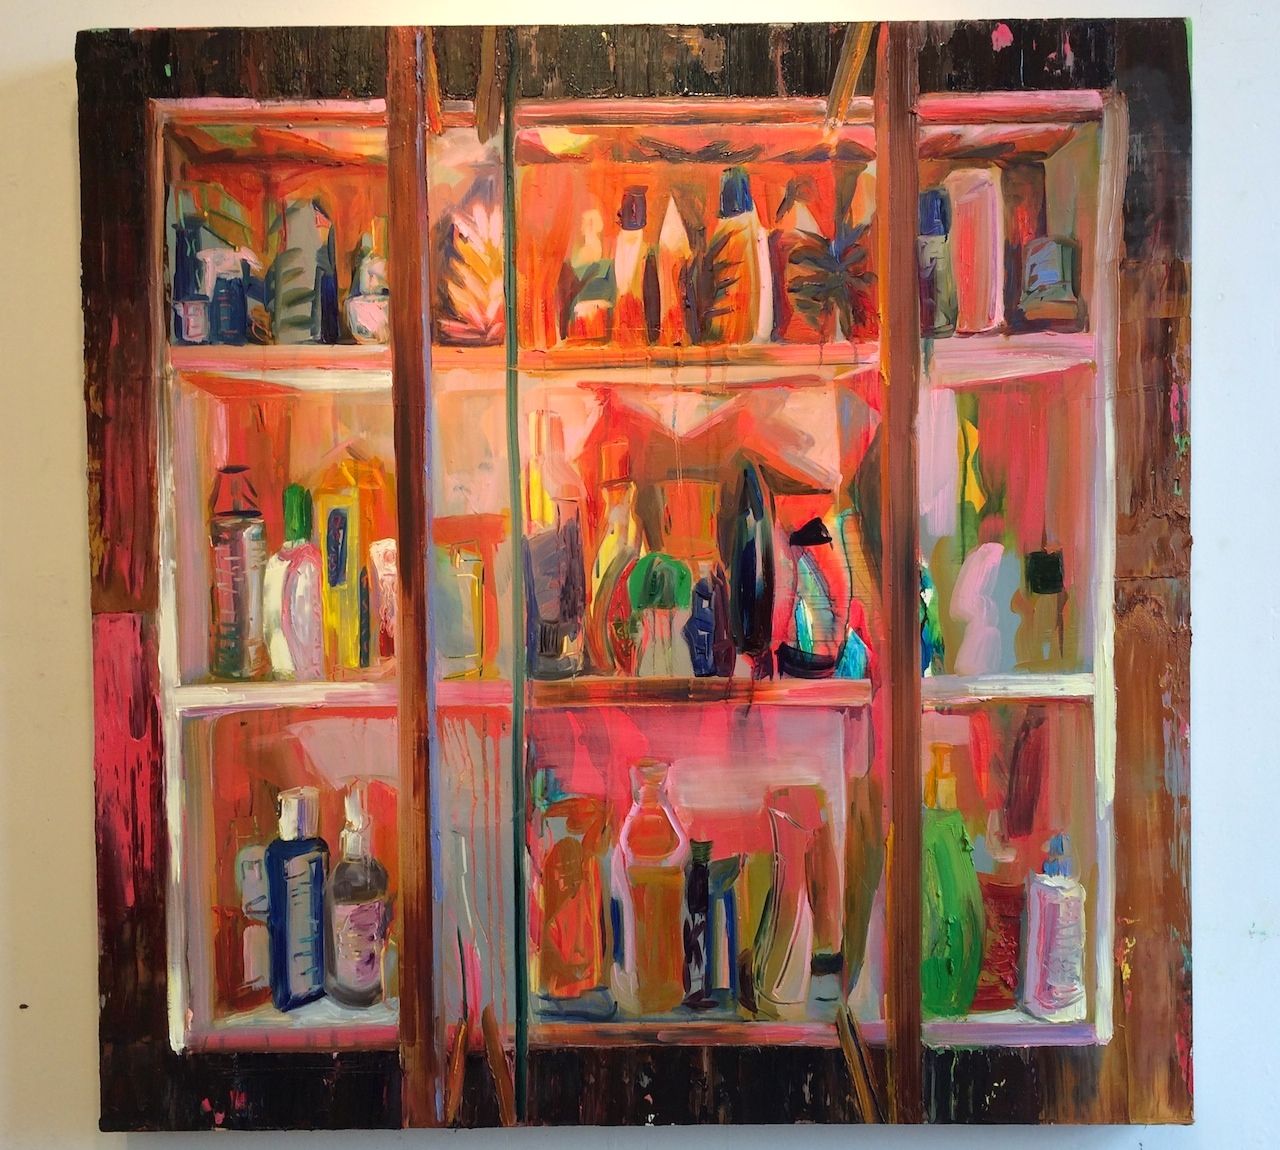 """A painting by Rachel Schmidhofer, """"Chapstick,"""" in the artist's studio at 126 13th Street"""